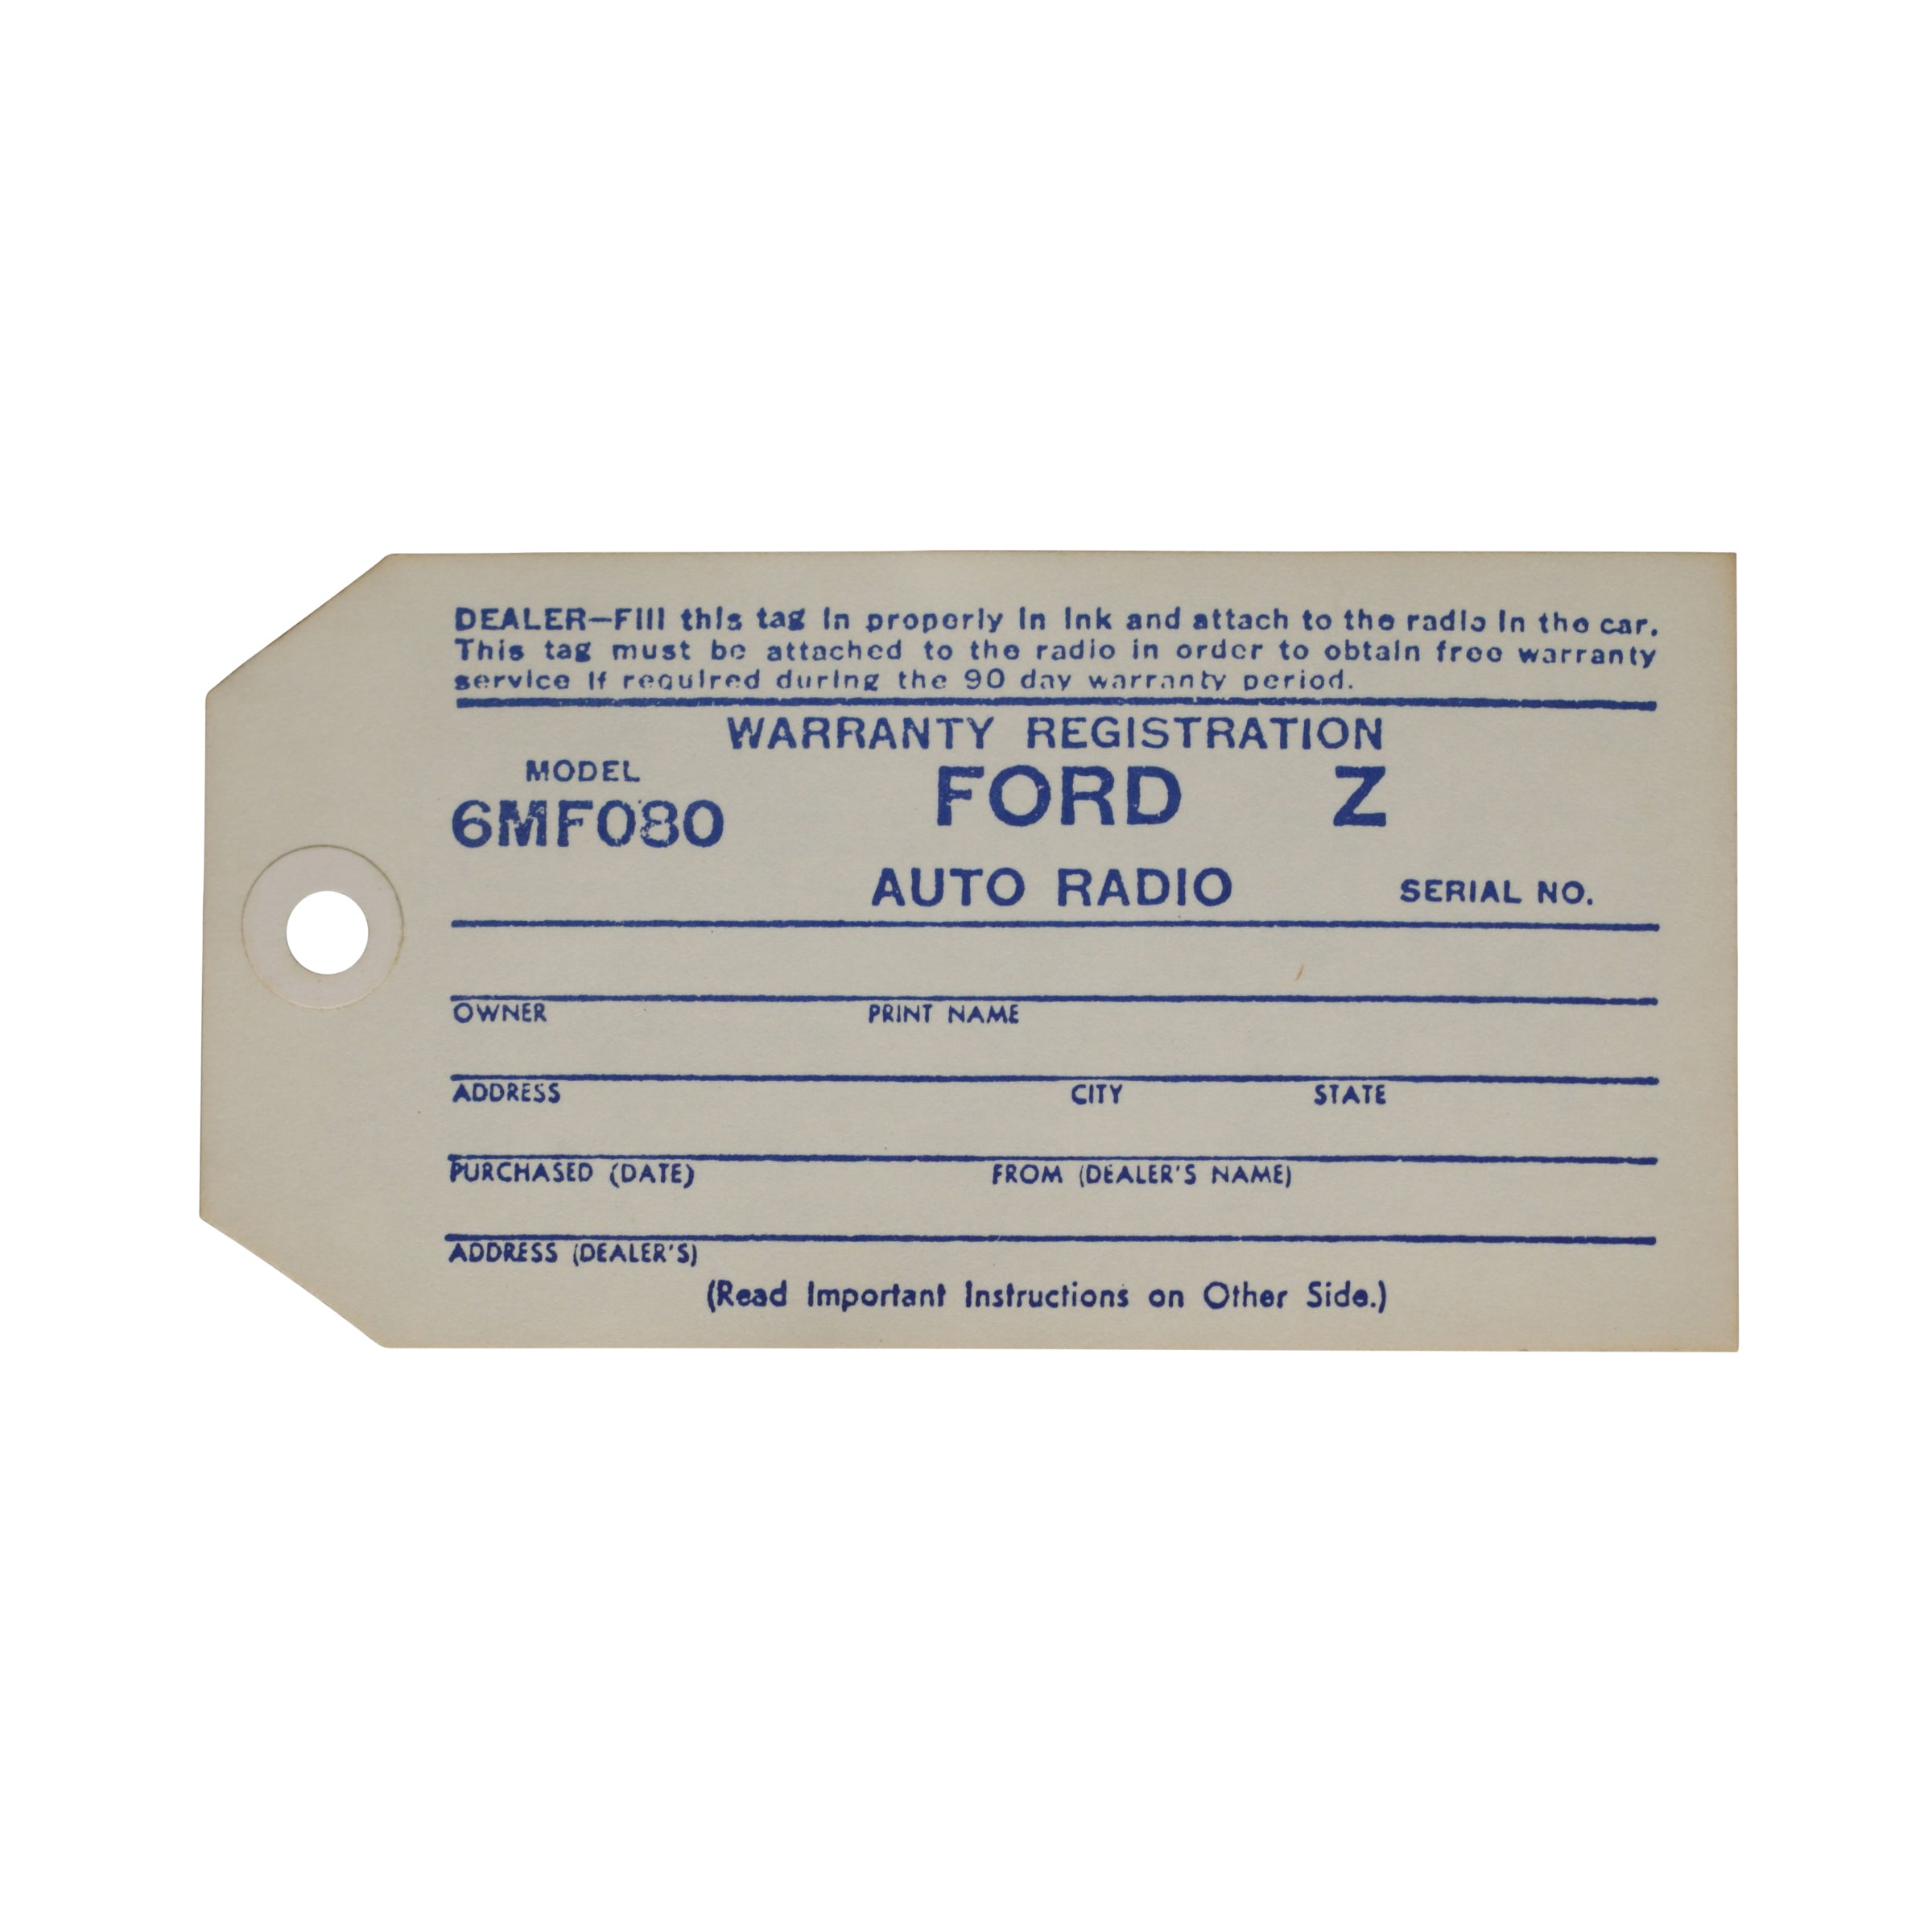 Interior Radio Warranty Tag • 1946-48 Ford